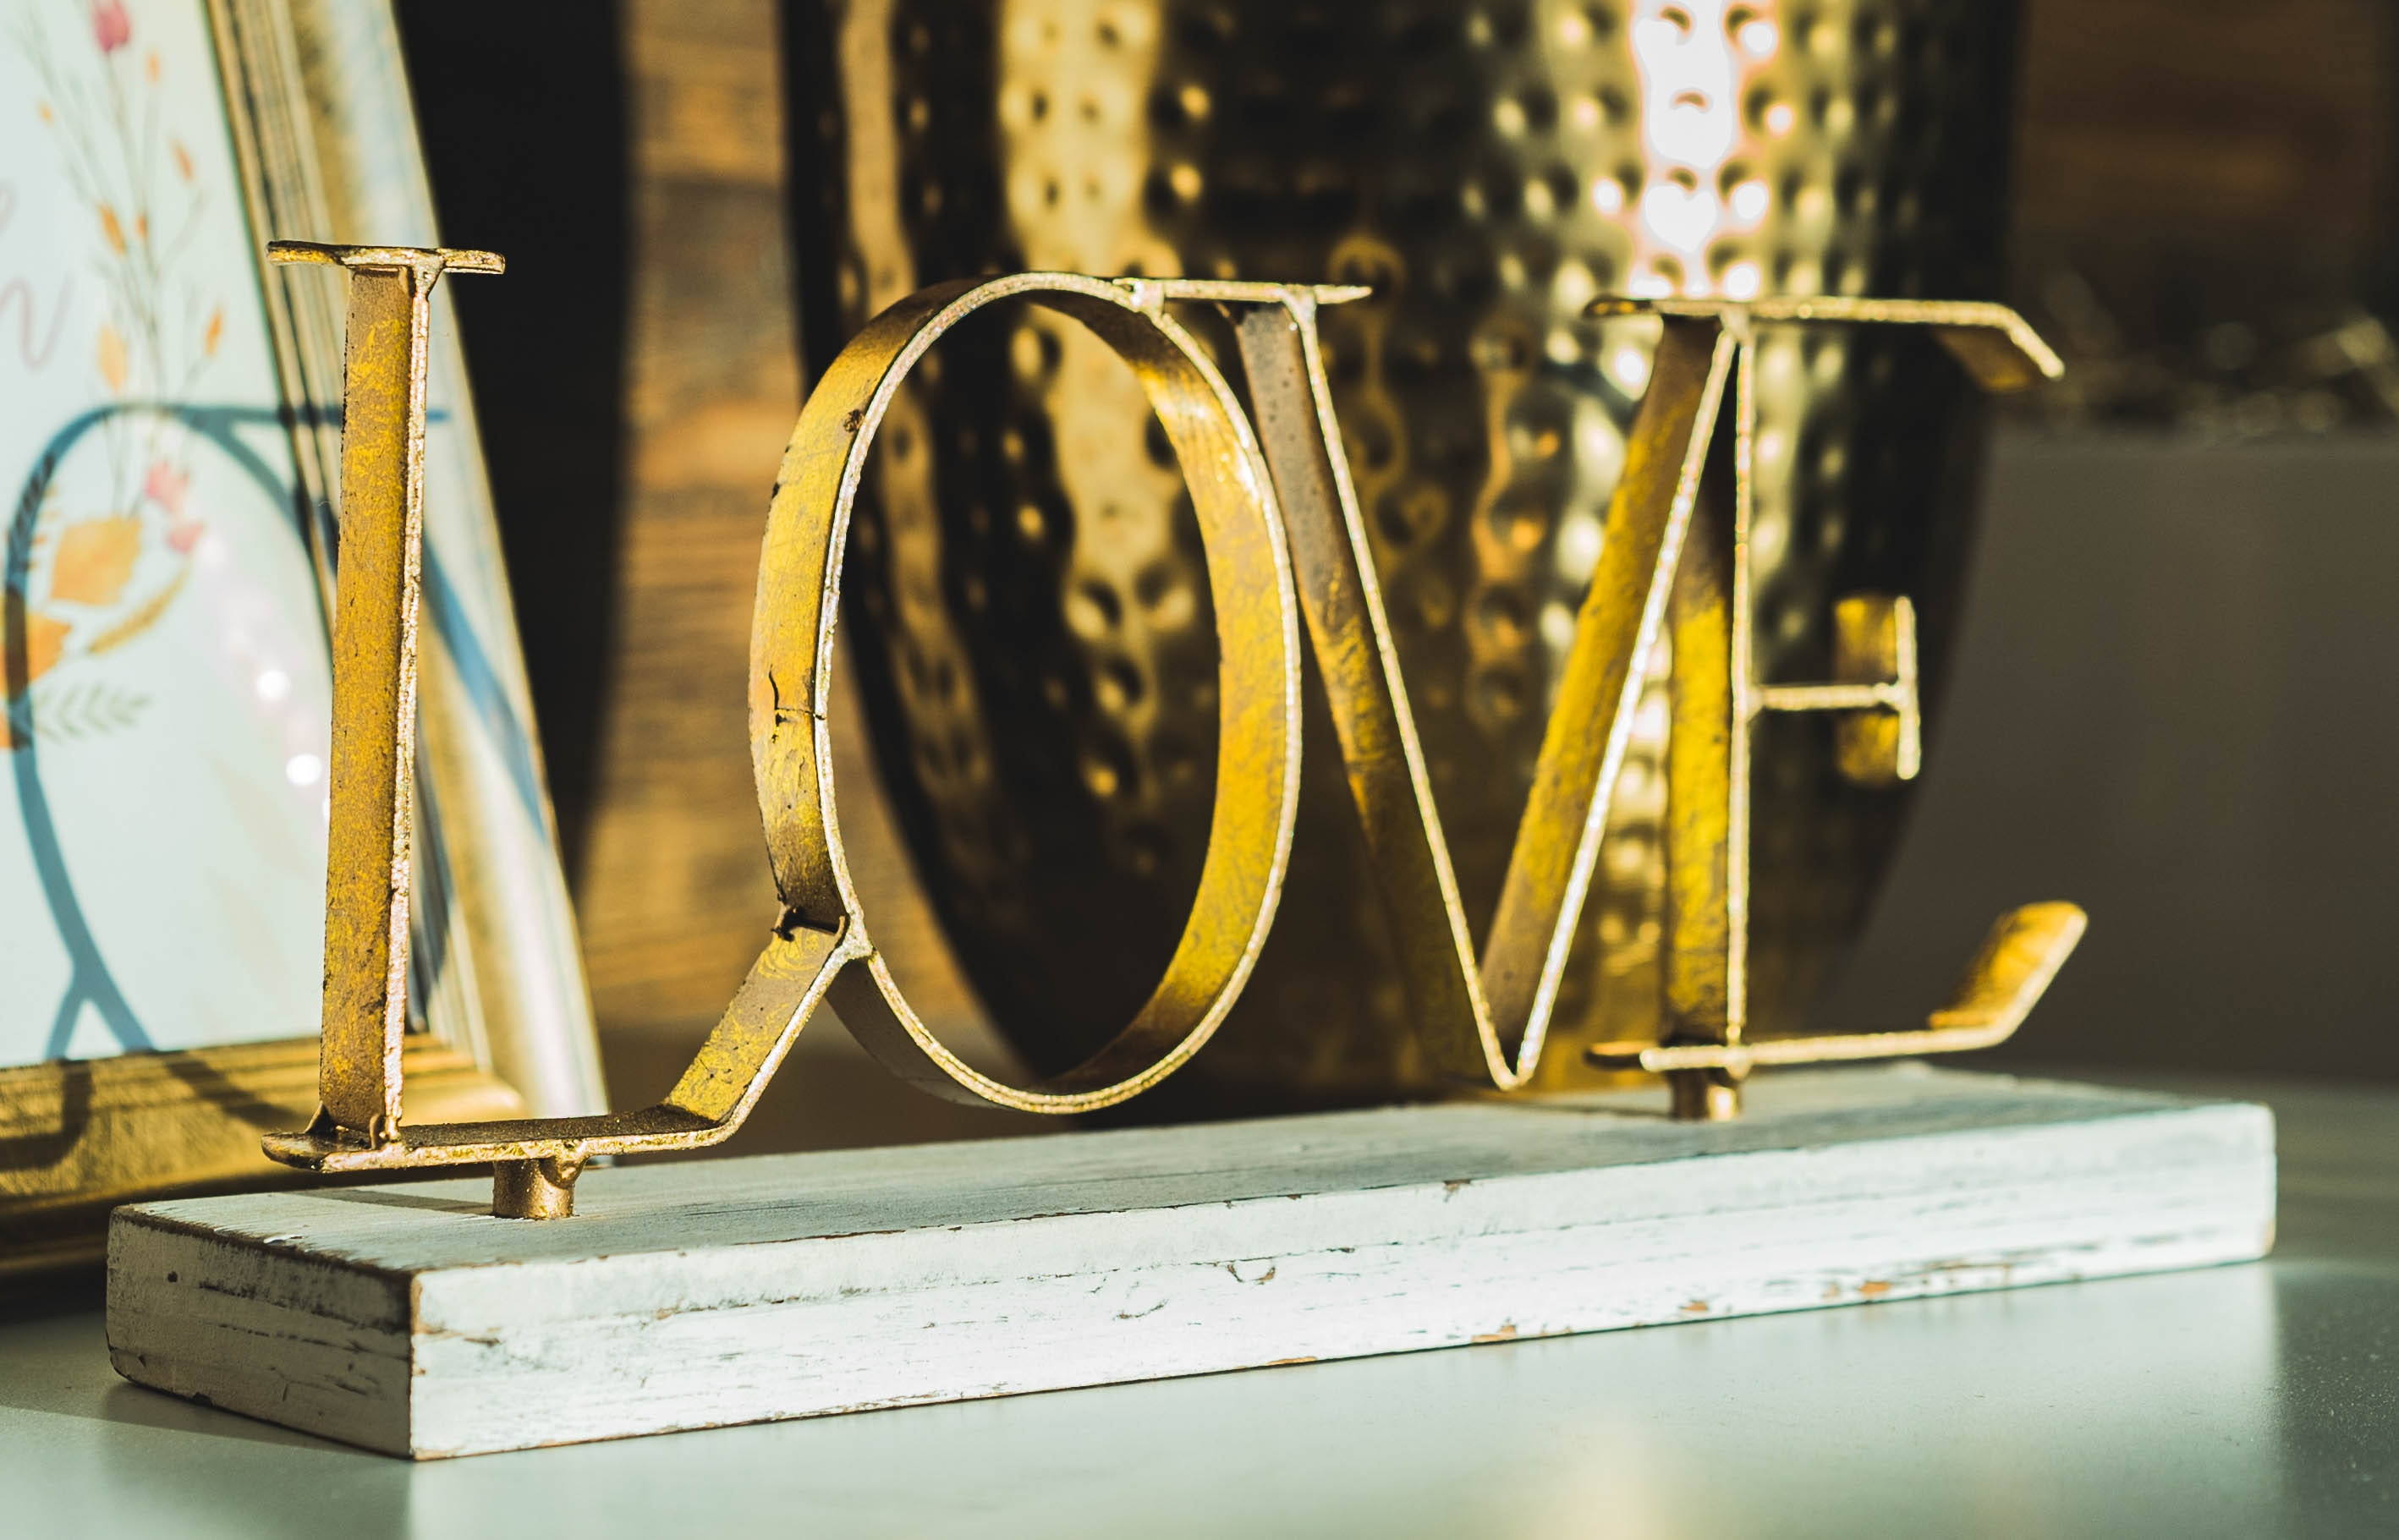 gold love freestanding letters table decor on top of white surface